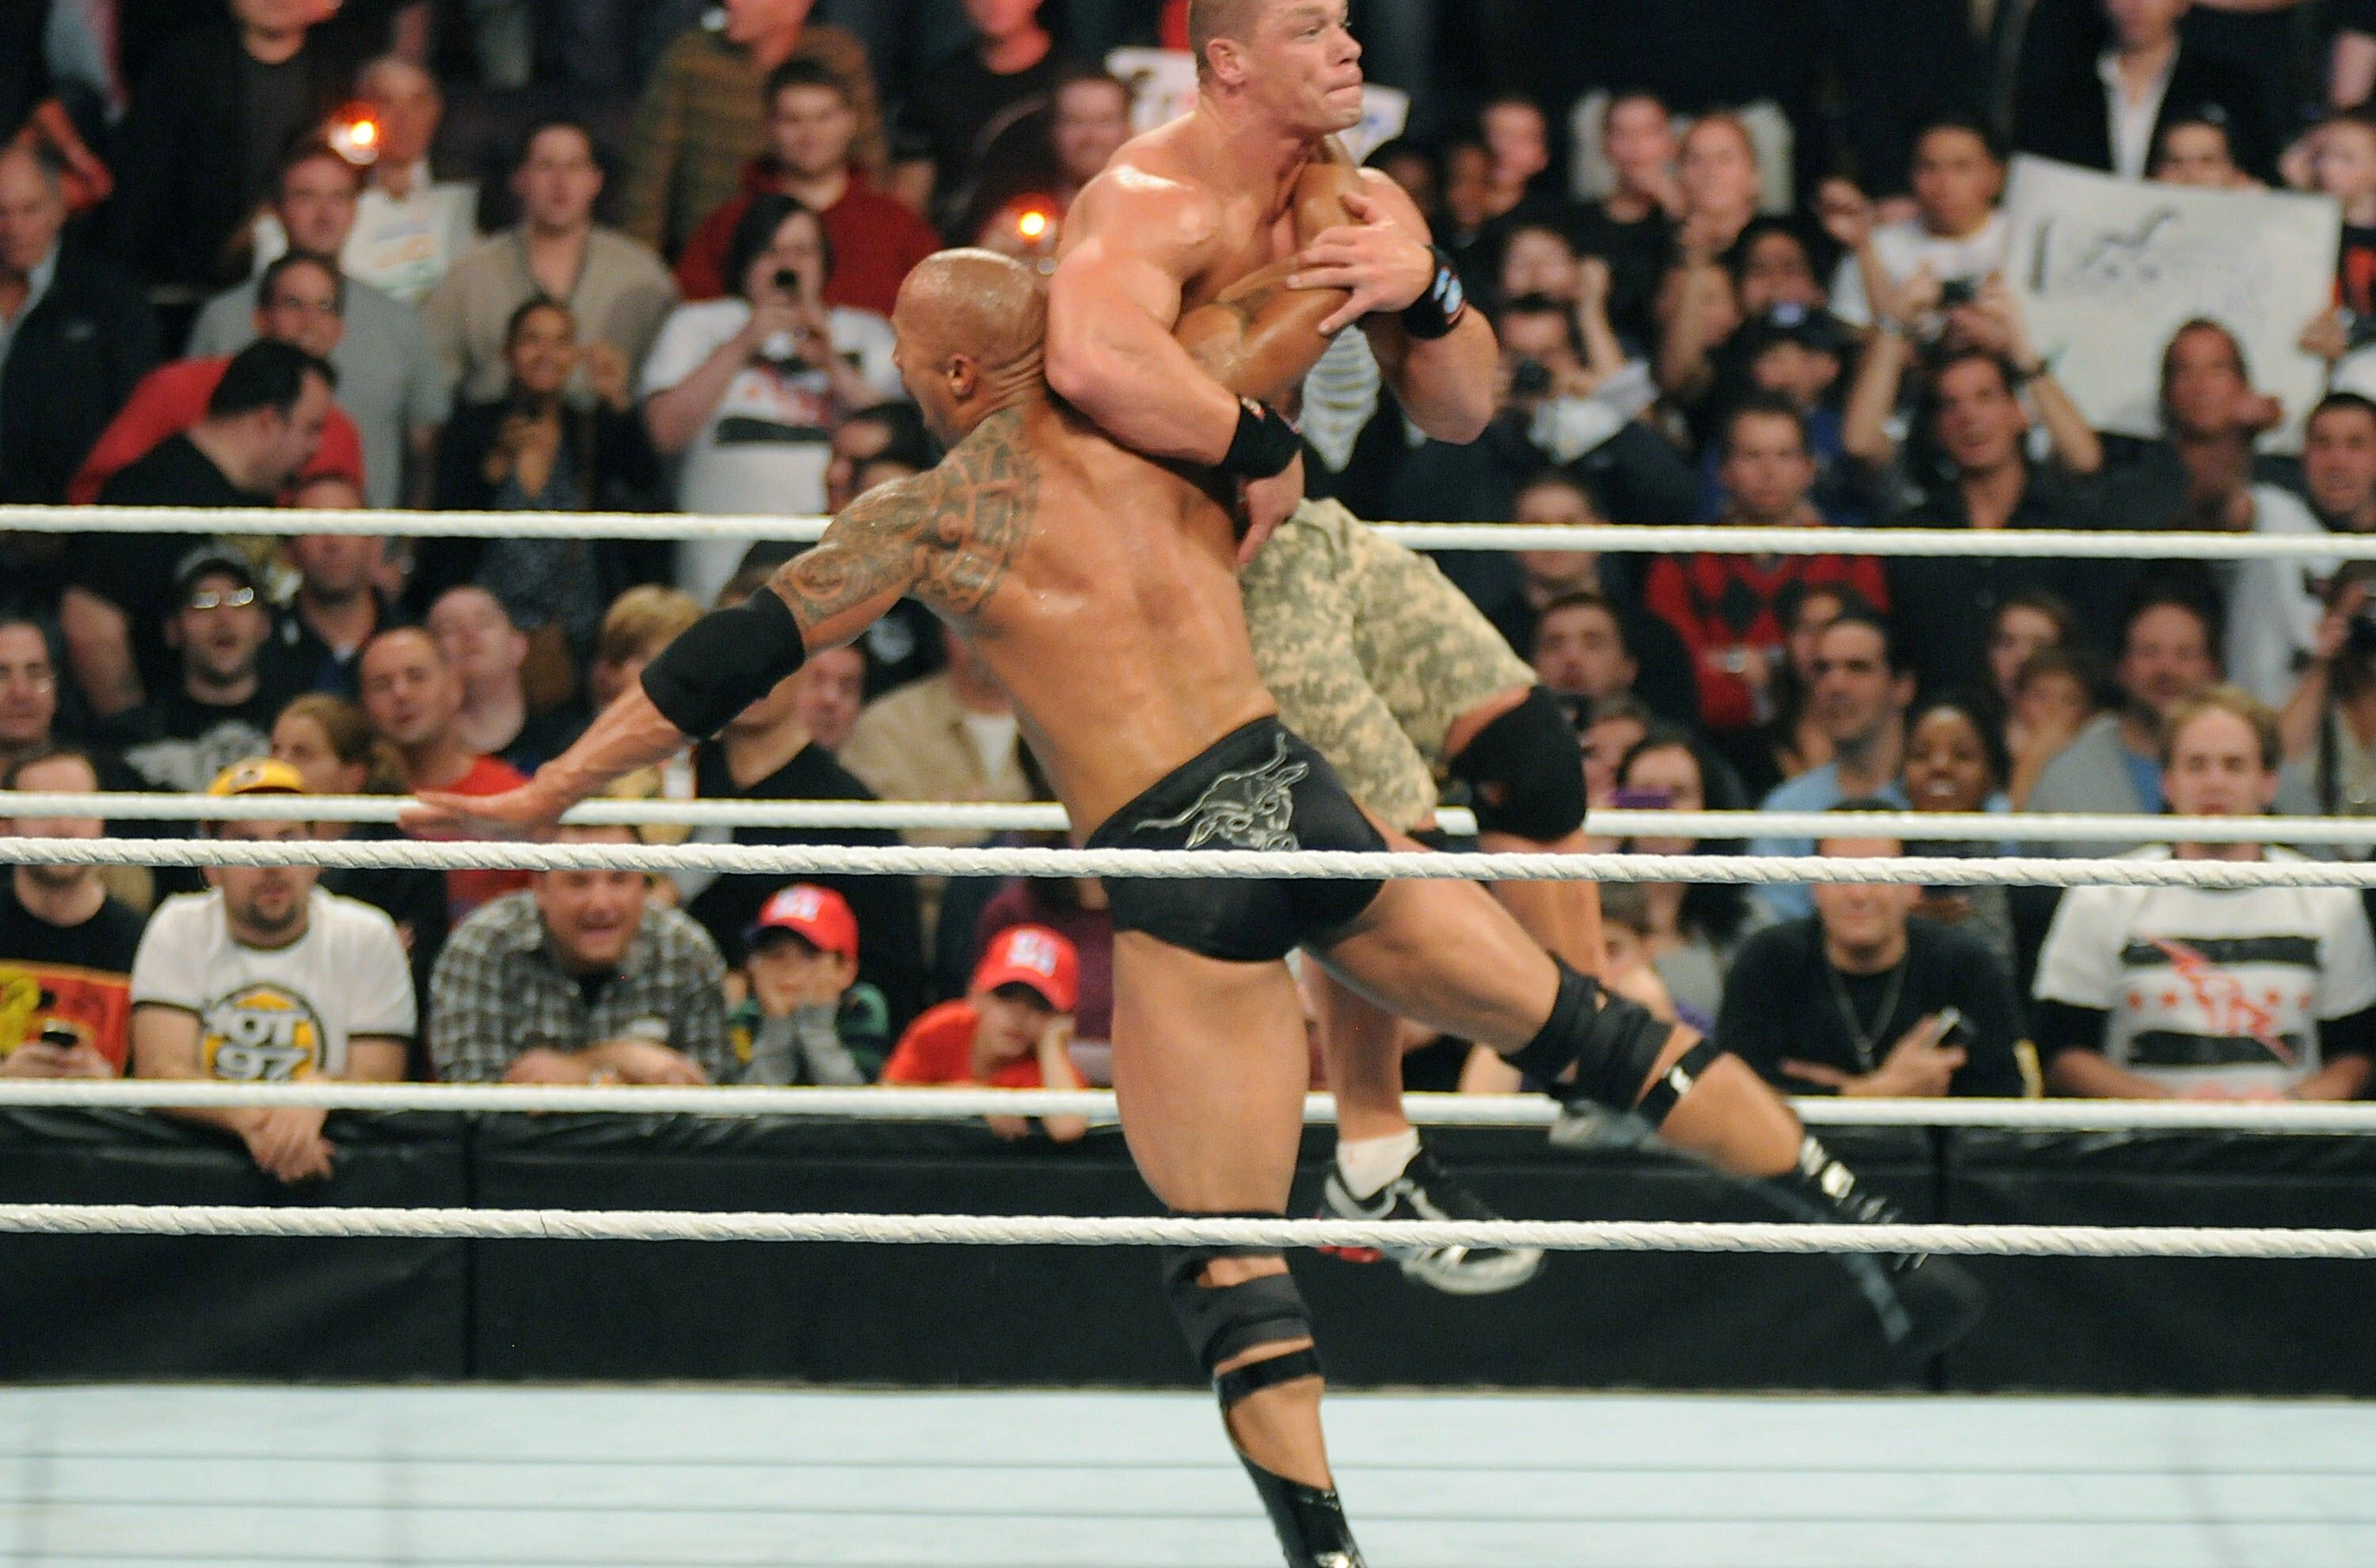 rock and john cena wwe fight hd wallpapers | hd wallpapers